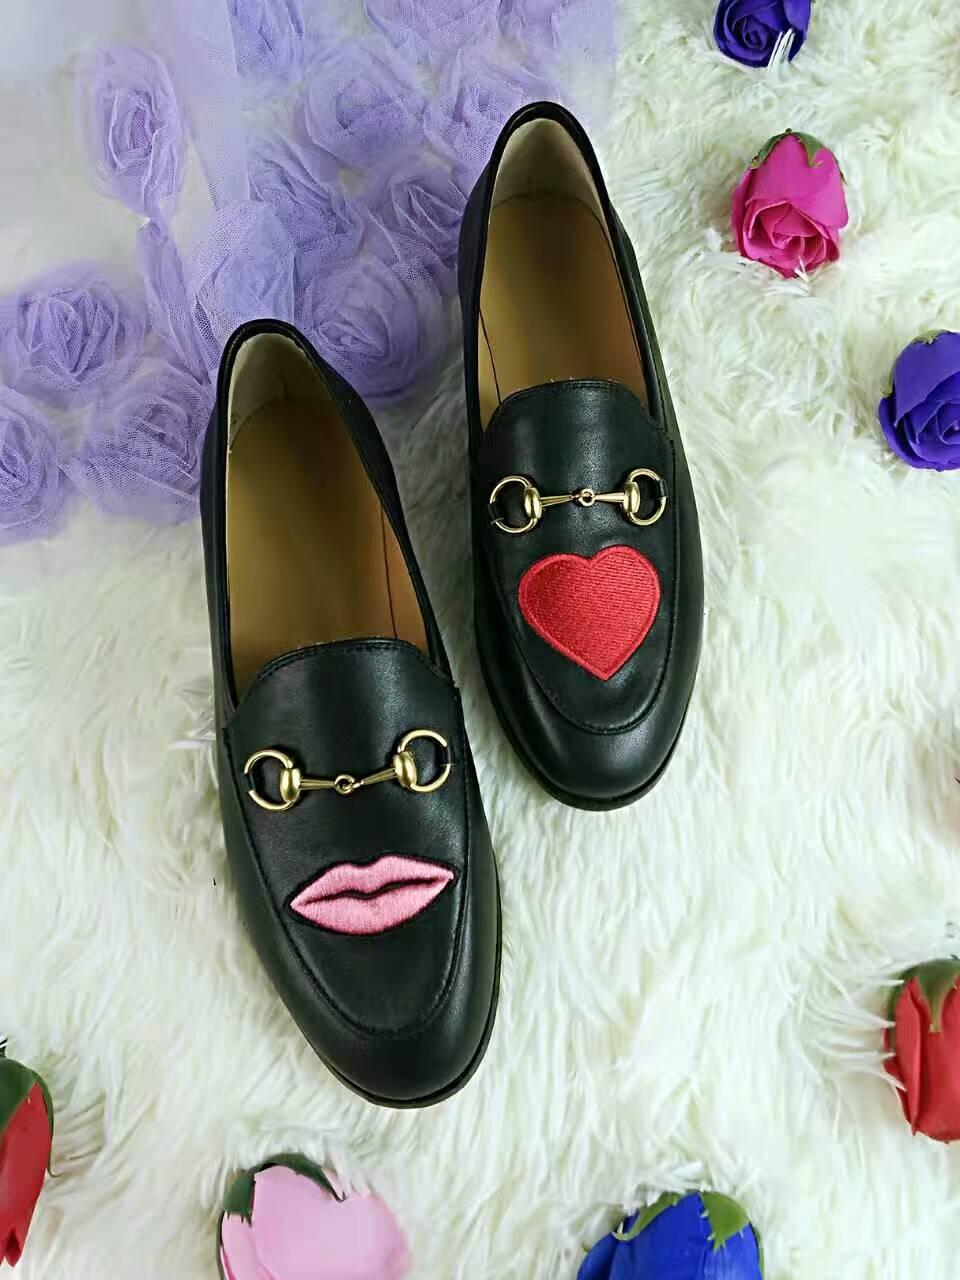 Hot Sale- version! u721 40 2 colors genuine leather embroidery flats loafer shoes flower snake heart lips black white g 2017 boyish stylish